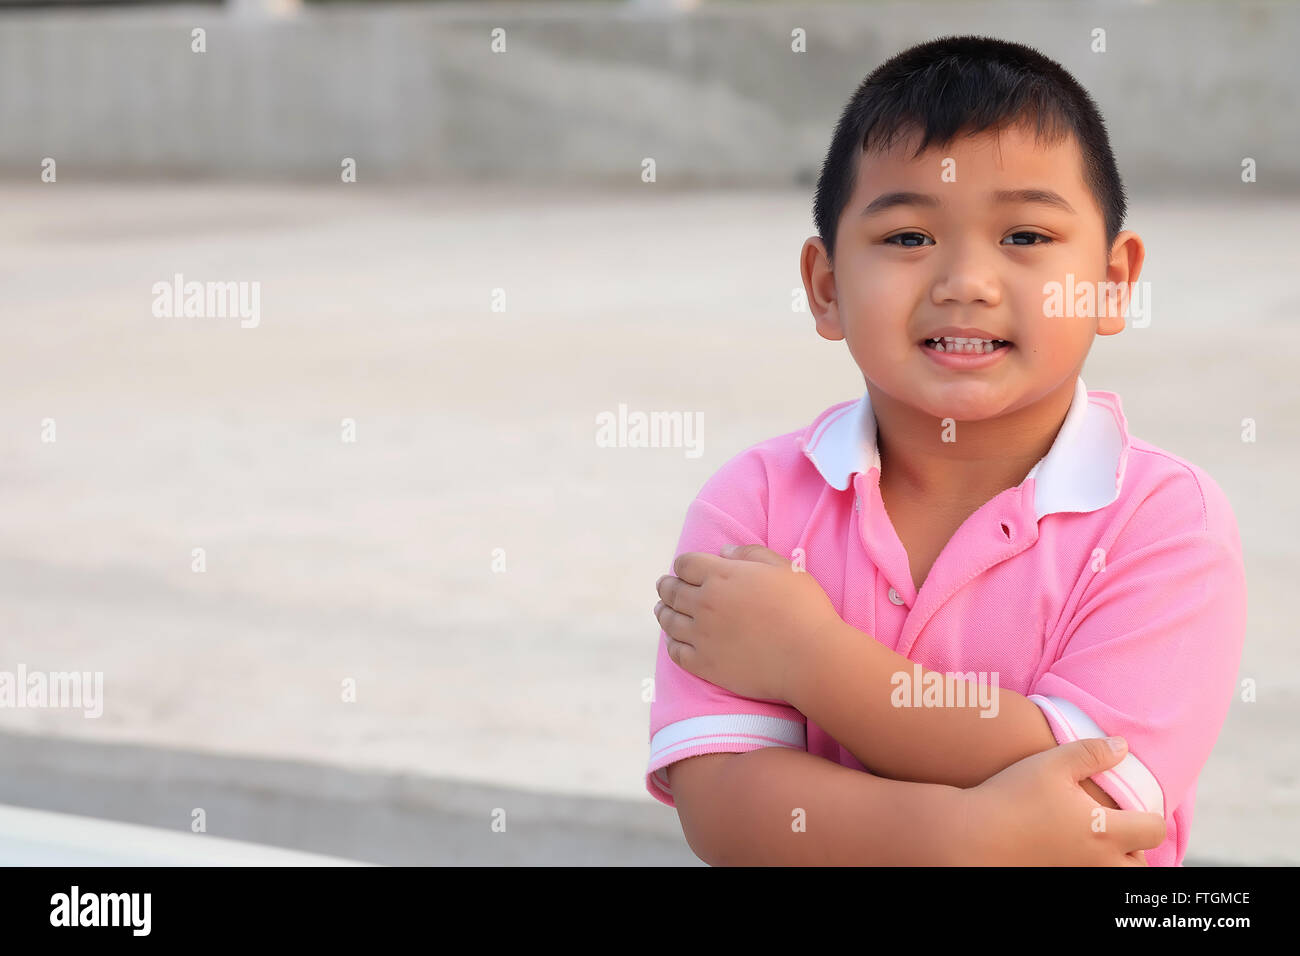 Kid portrait smiling and cross one's arm  - Asia children - Stock Image